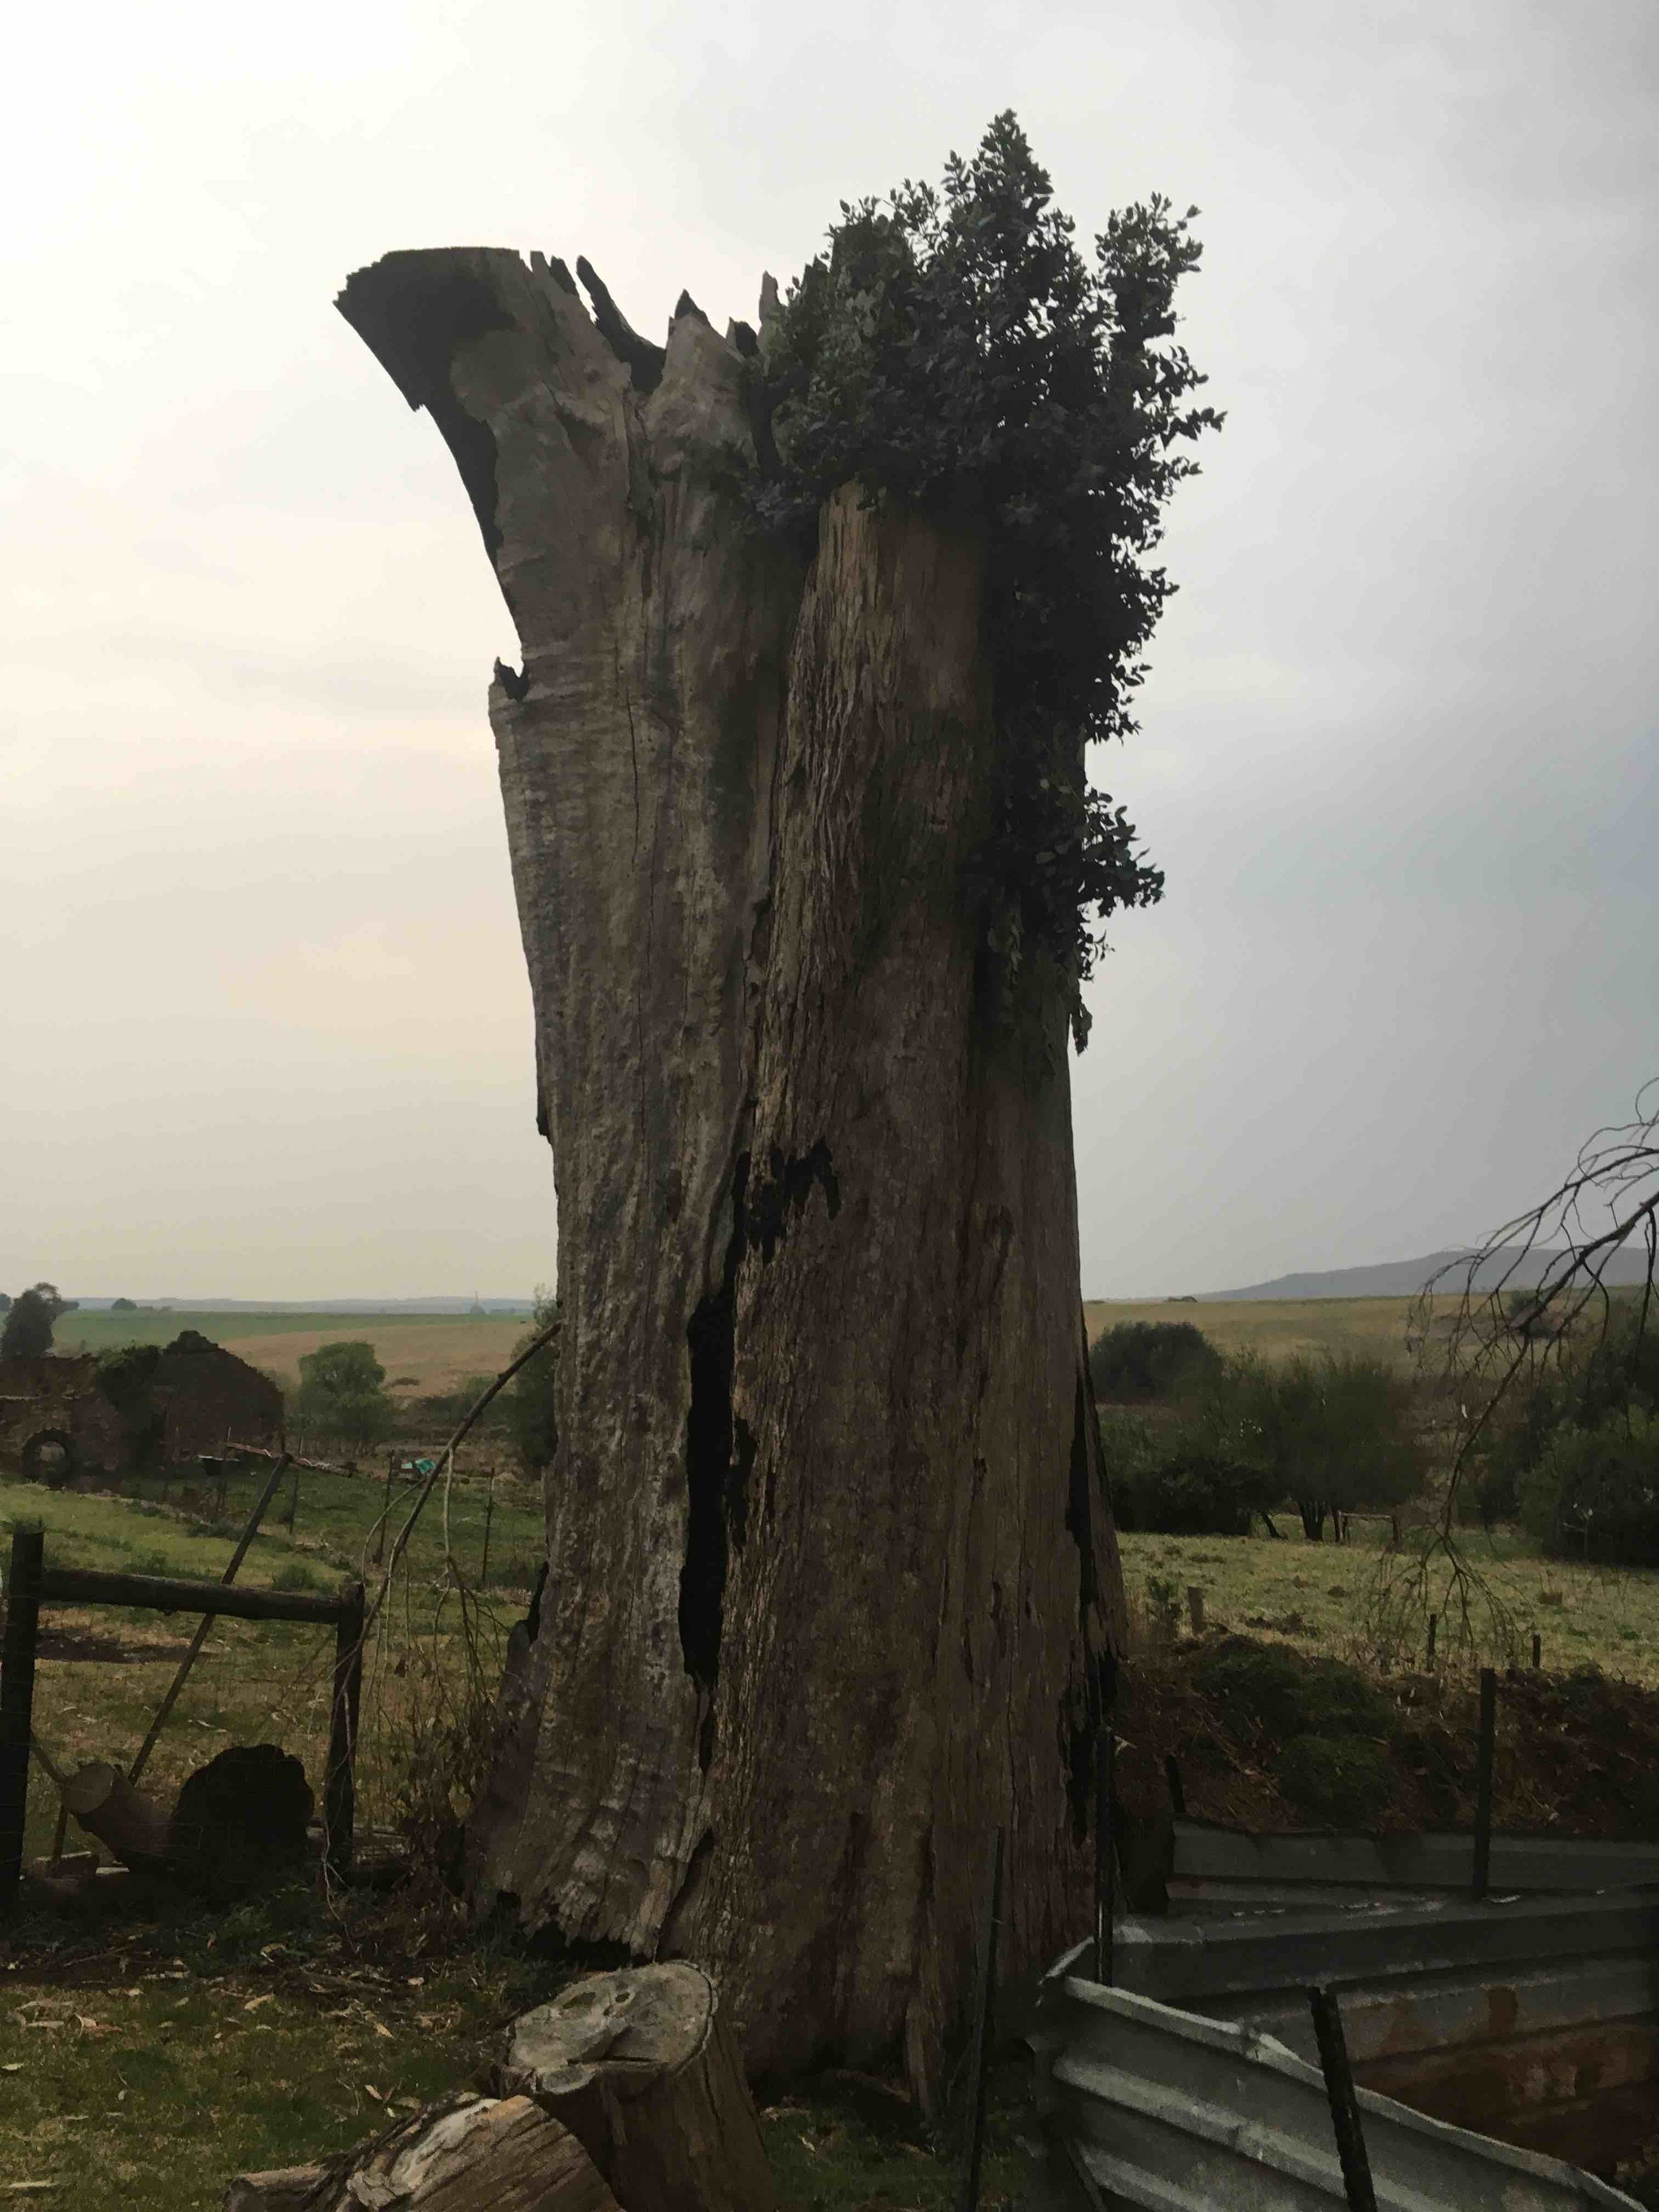 The nest was at the top of this tree stump (over five meters high).